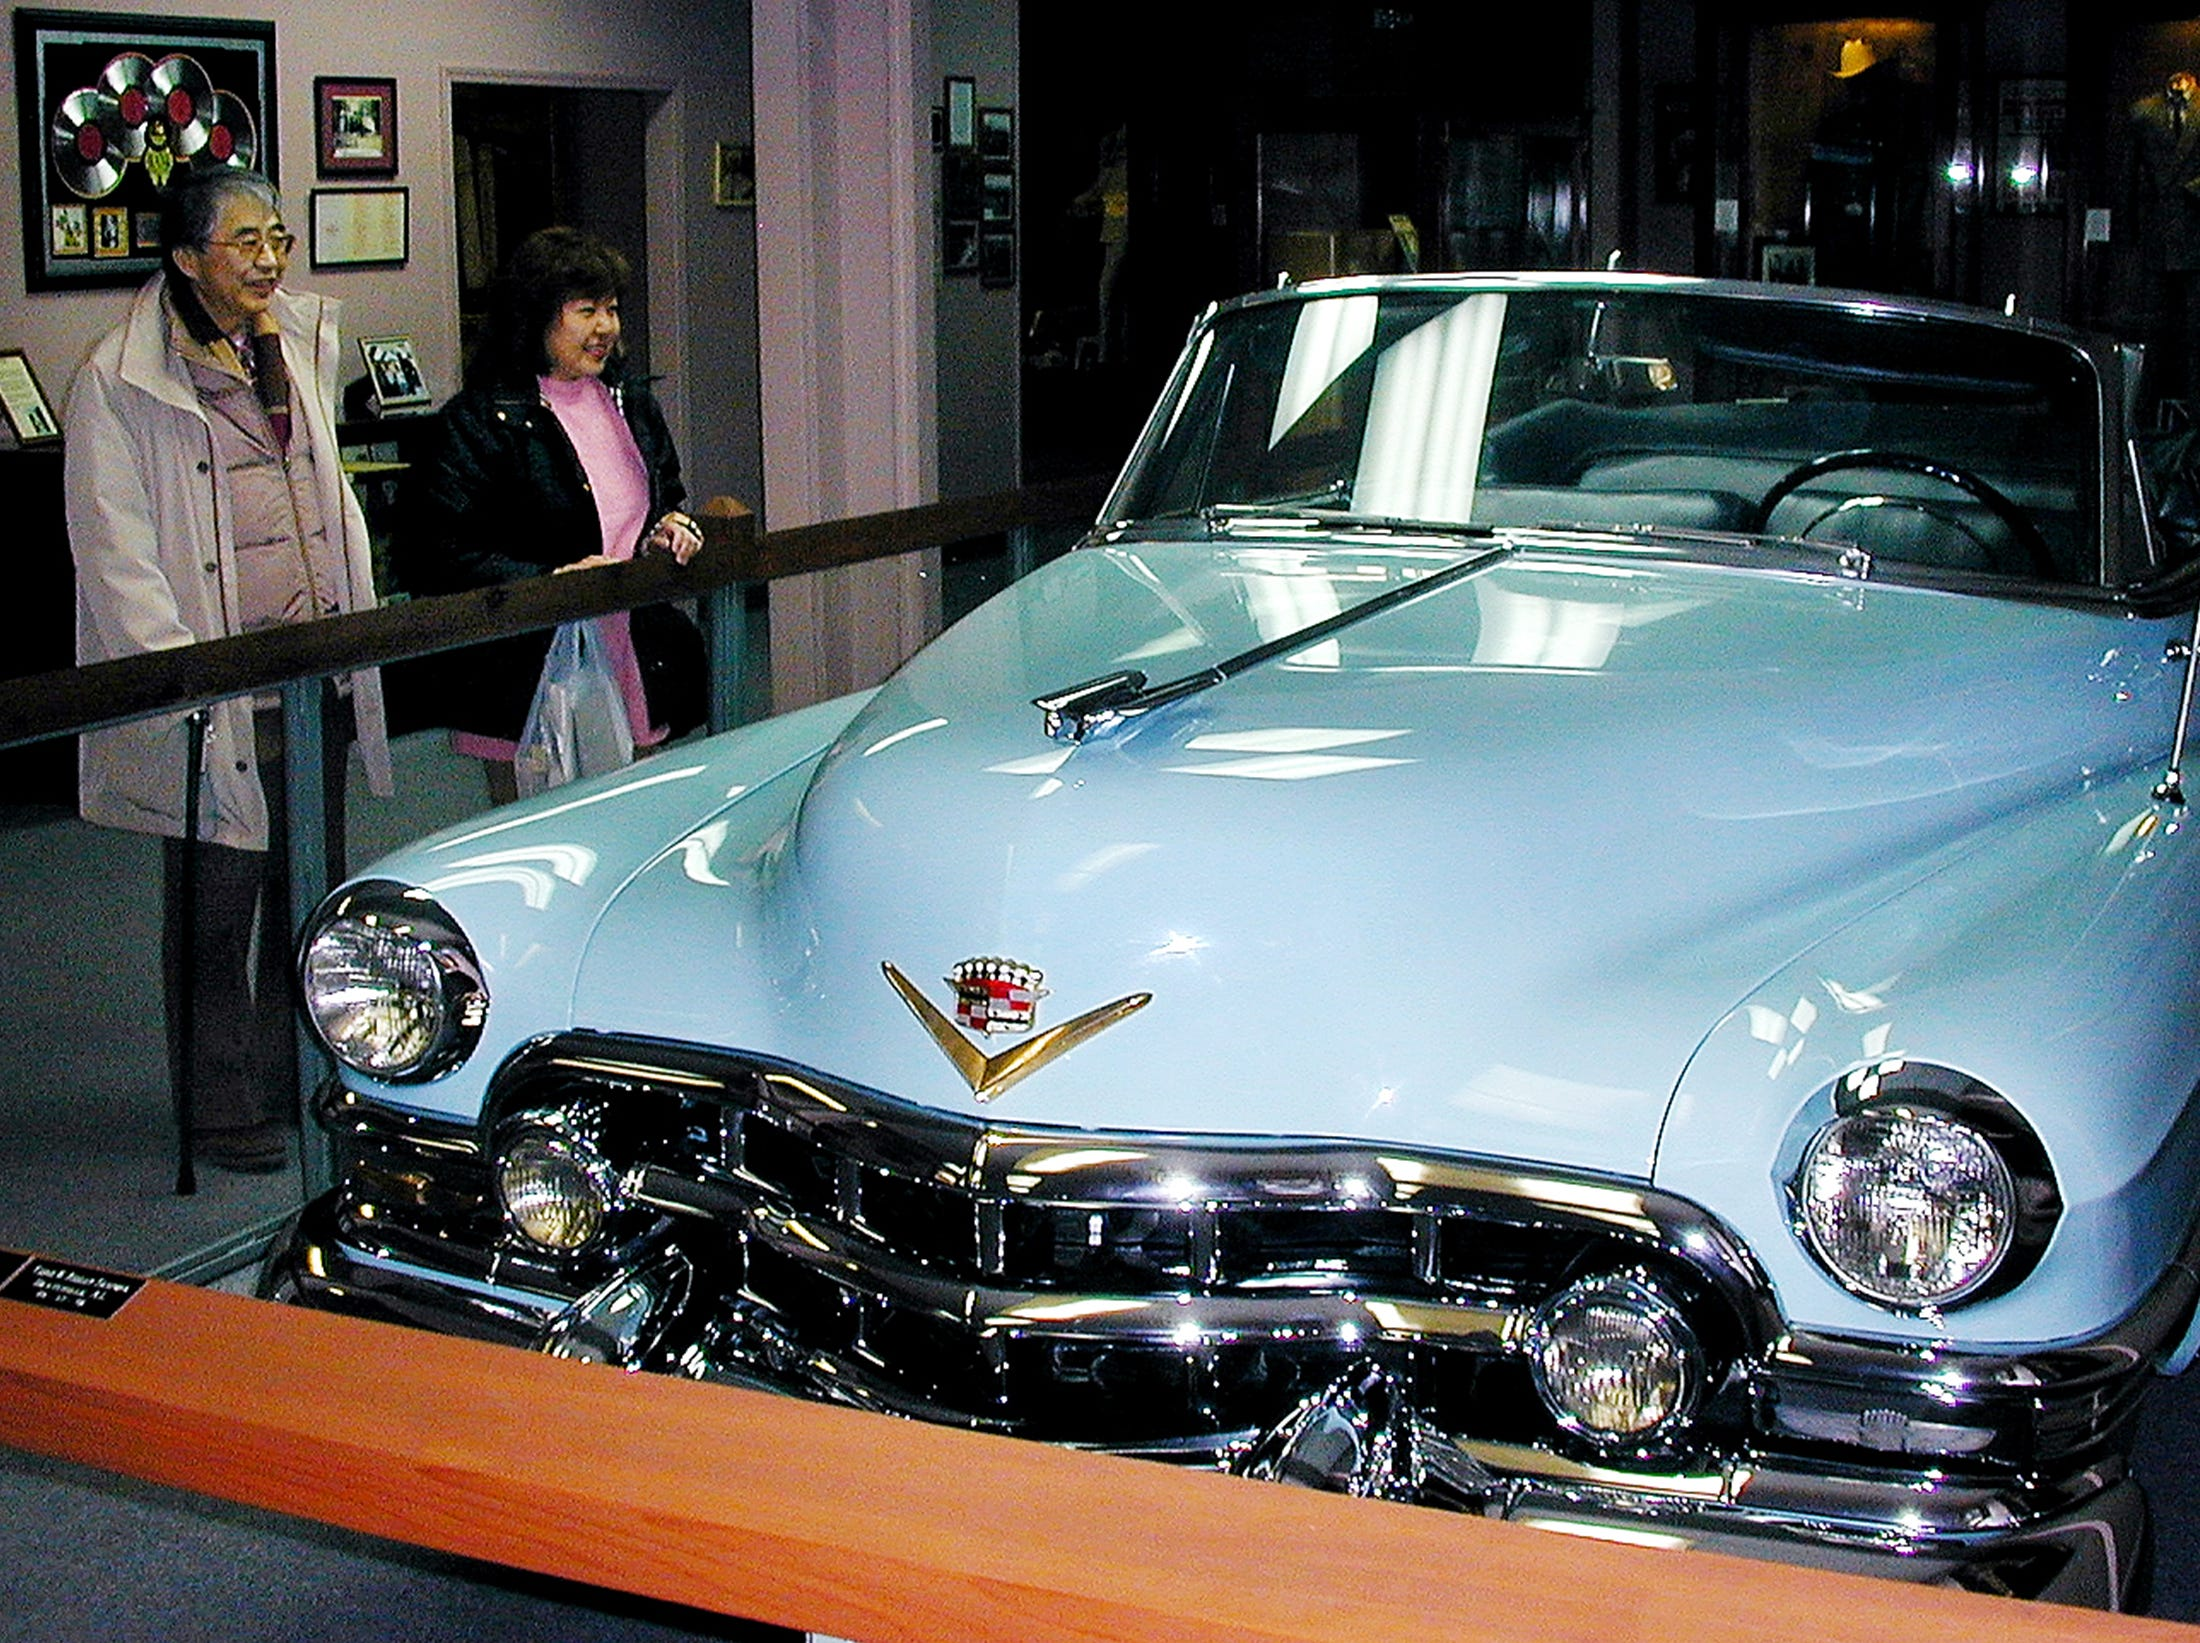 Charles Carr was driving Hank Williams in this Cadillac (shown at the Hank Williams Museum in Montgomery) when Williams died Jan. 1, 1953, as they were on their way to a concert in Canton, Ohio.